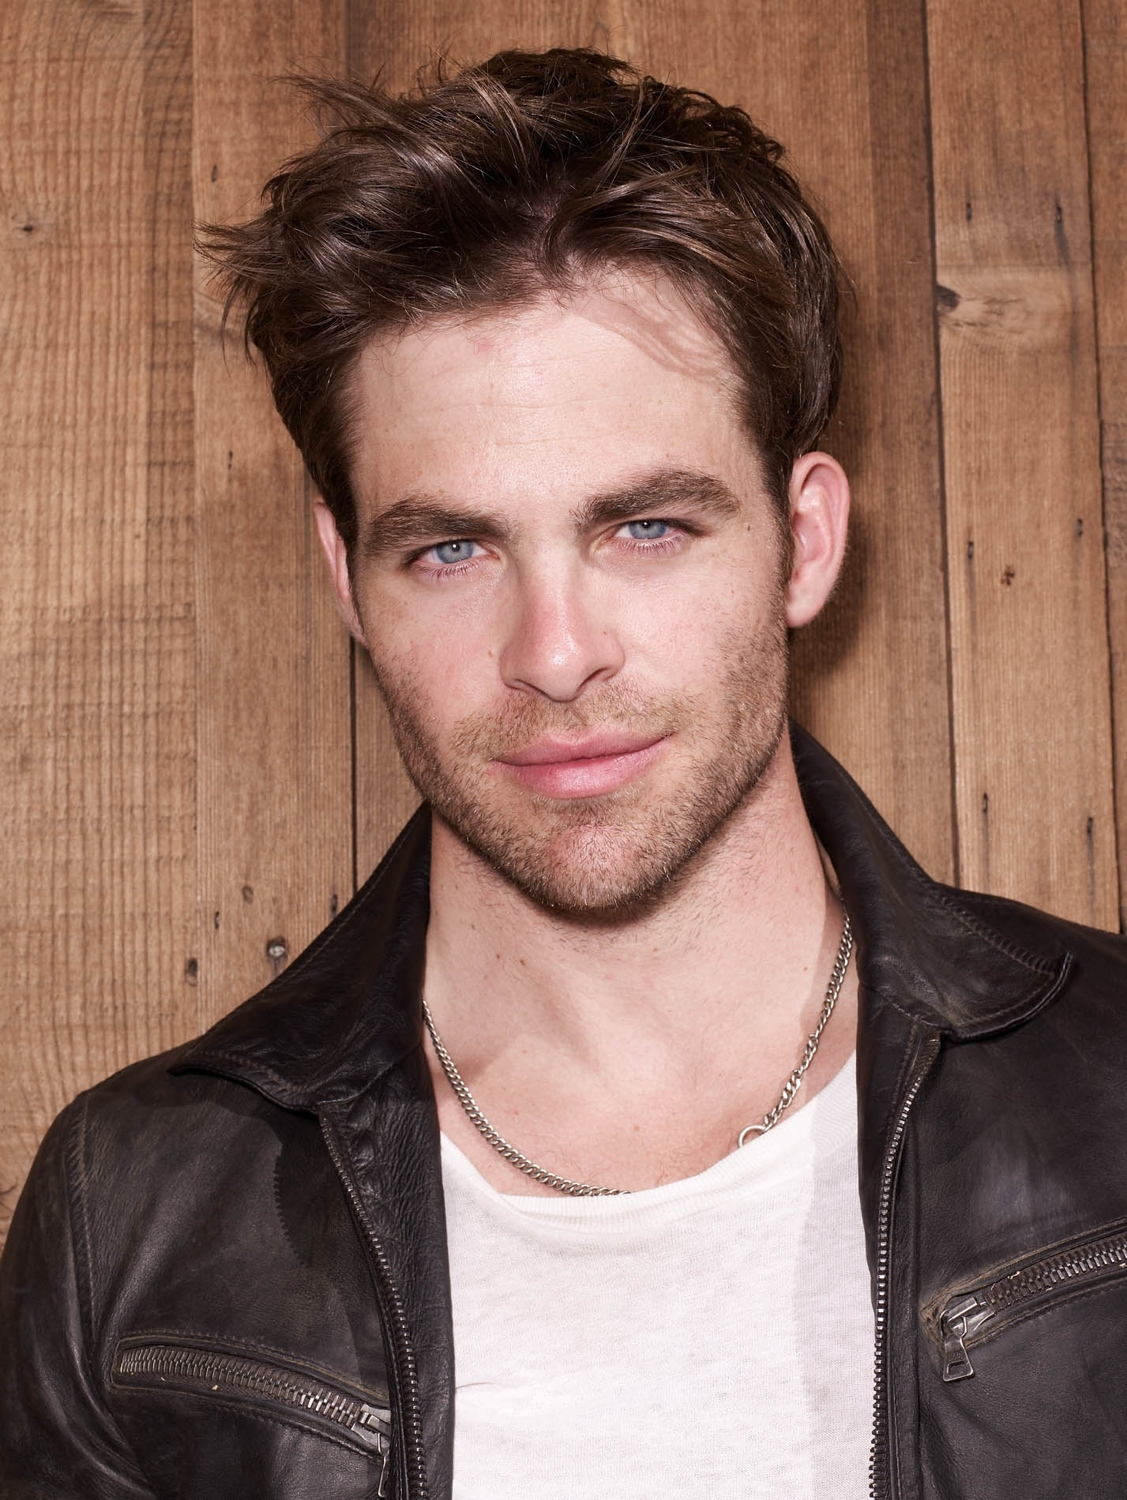 chris pine instagramchris pine gif, chris pine 2016, chris pine tumblr, chris pine 2017, chris pine height, chris pine vk, chris pine photoshoot, chris pine films, chris pine gif hunt, chris pine wife, chris pine wdw, chris pine wiki, chris pine sing, chris pine кинопоиск, chris pine imdb, chris pine tom hardy, chris pine news, chris pine instagram, chris pine and gal gadot, chris pine late late show